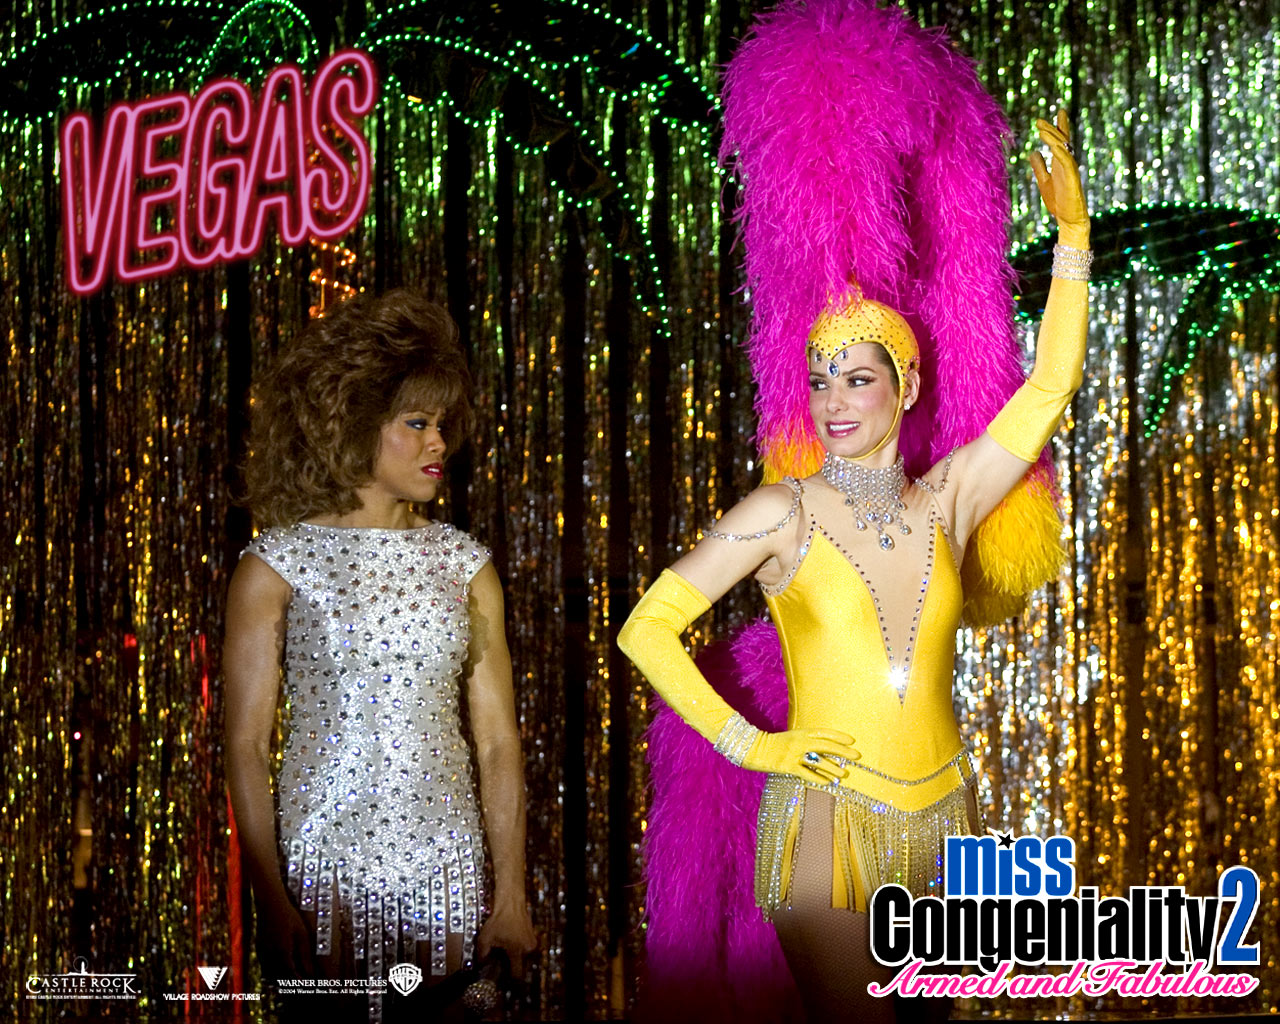 Miss Congeniality 2: Armed And Fabulous Backgrounds, Compatible - PC, Mobile, Gadgets| 1280x1024 px